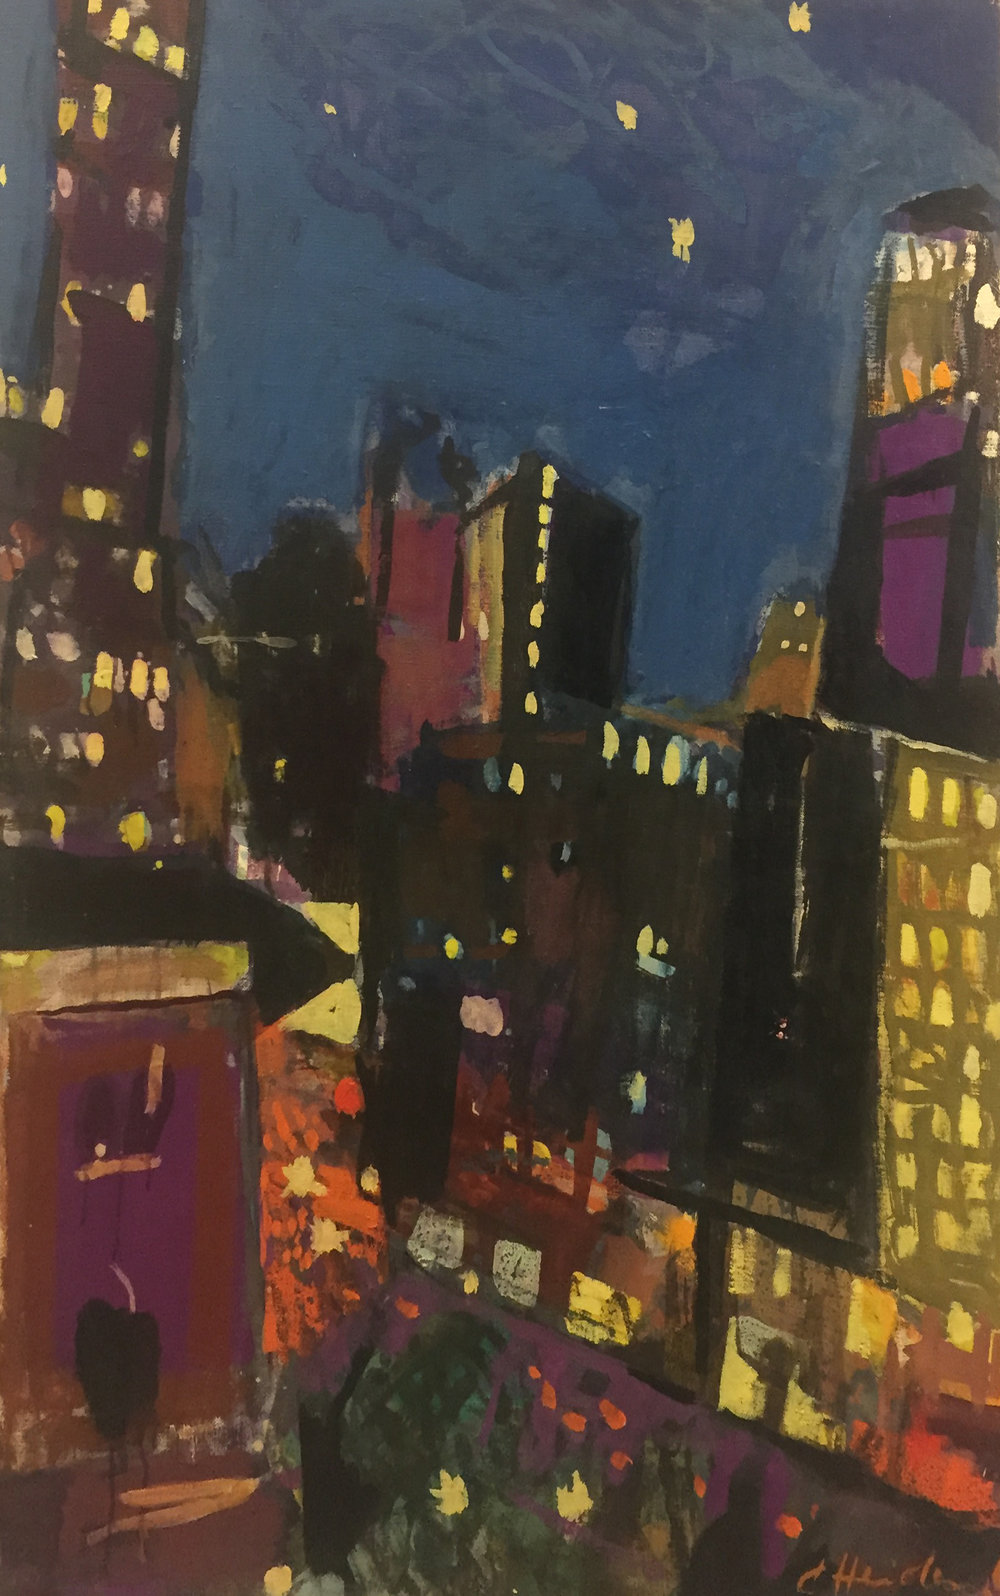 Untitled (Cityscape). N.d. Oil on canvas.